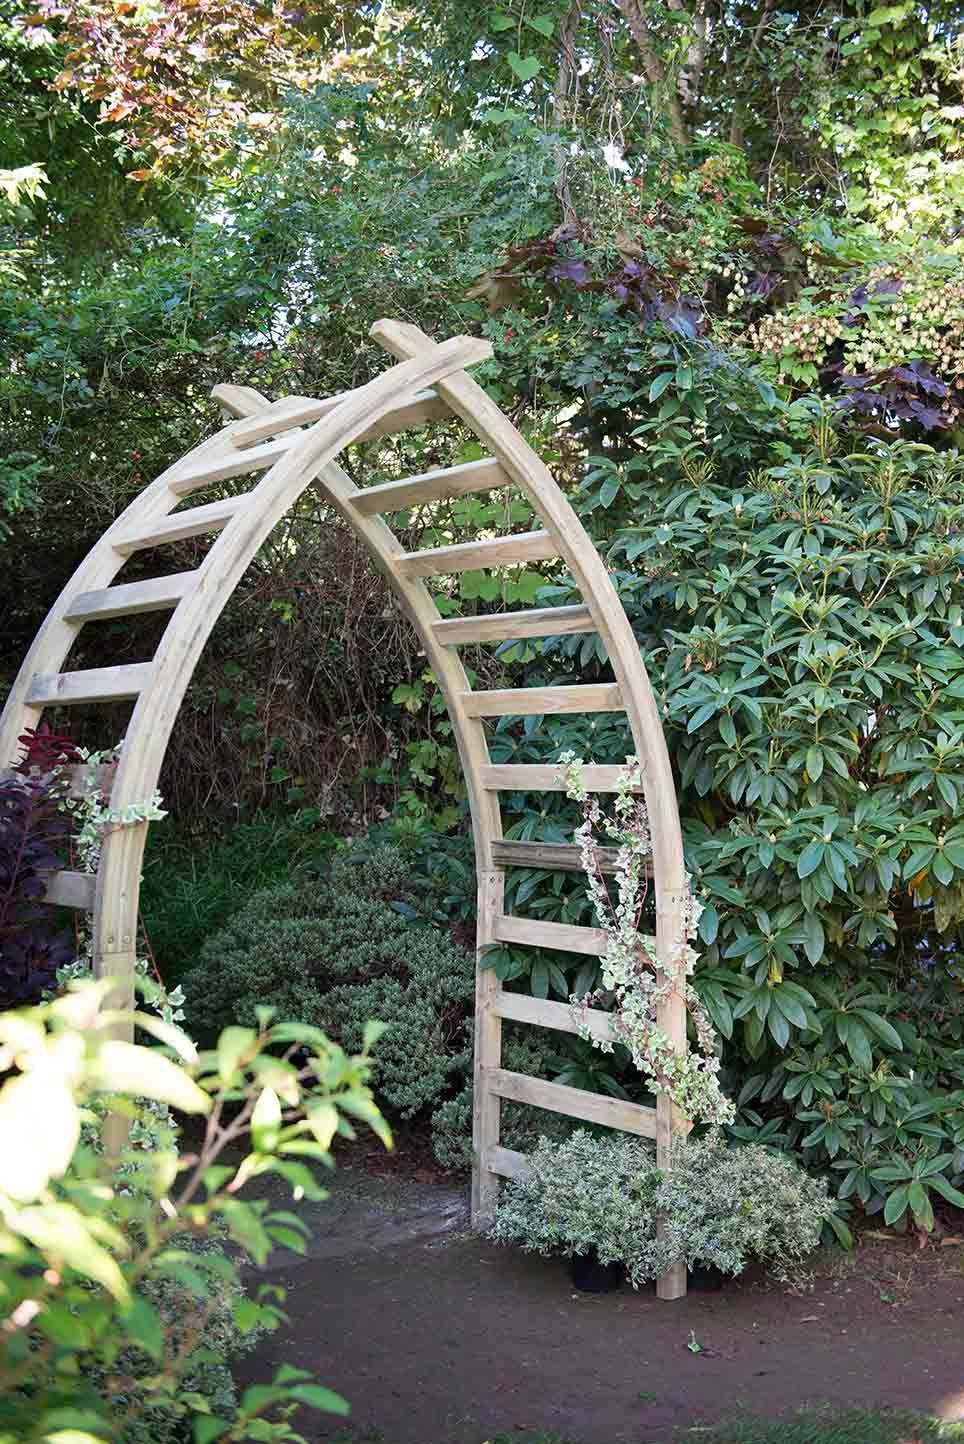 Diy garden ideas pinterest  whitby arch forest garden  DIY Garden Ideas  Pinterest  Garden